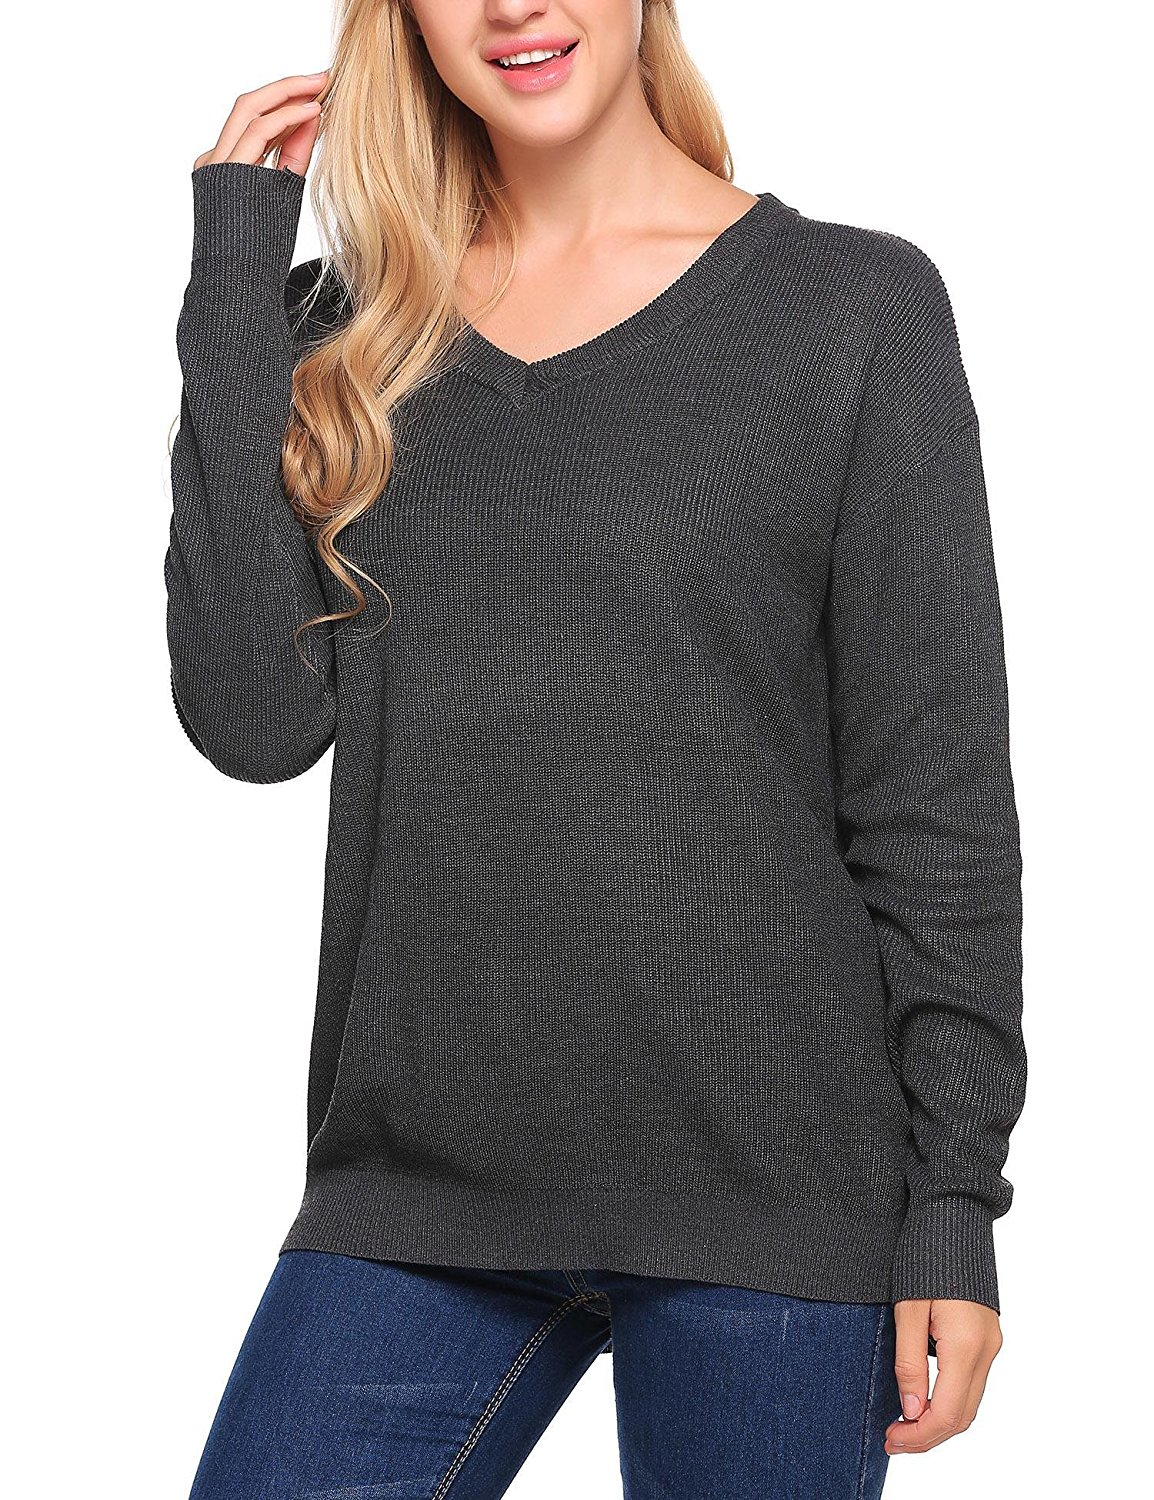 adcc7c9c232e95 Get Quotations · ELESOL Women Oversized Batwing Knitted Pullover Loose  Sweater Tee Tops Gray XL